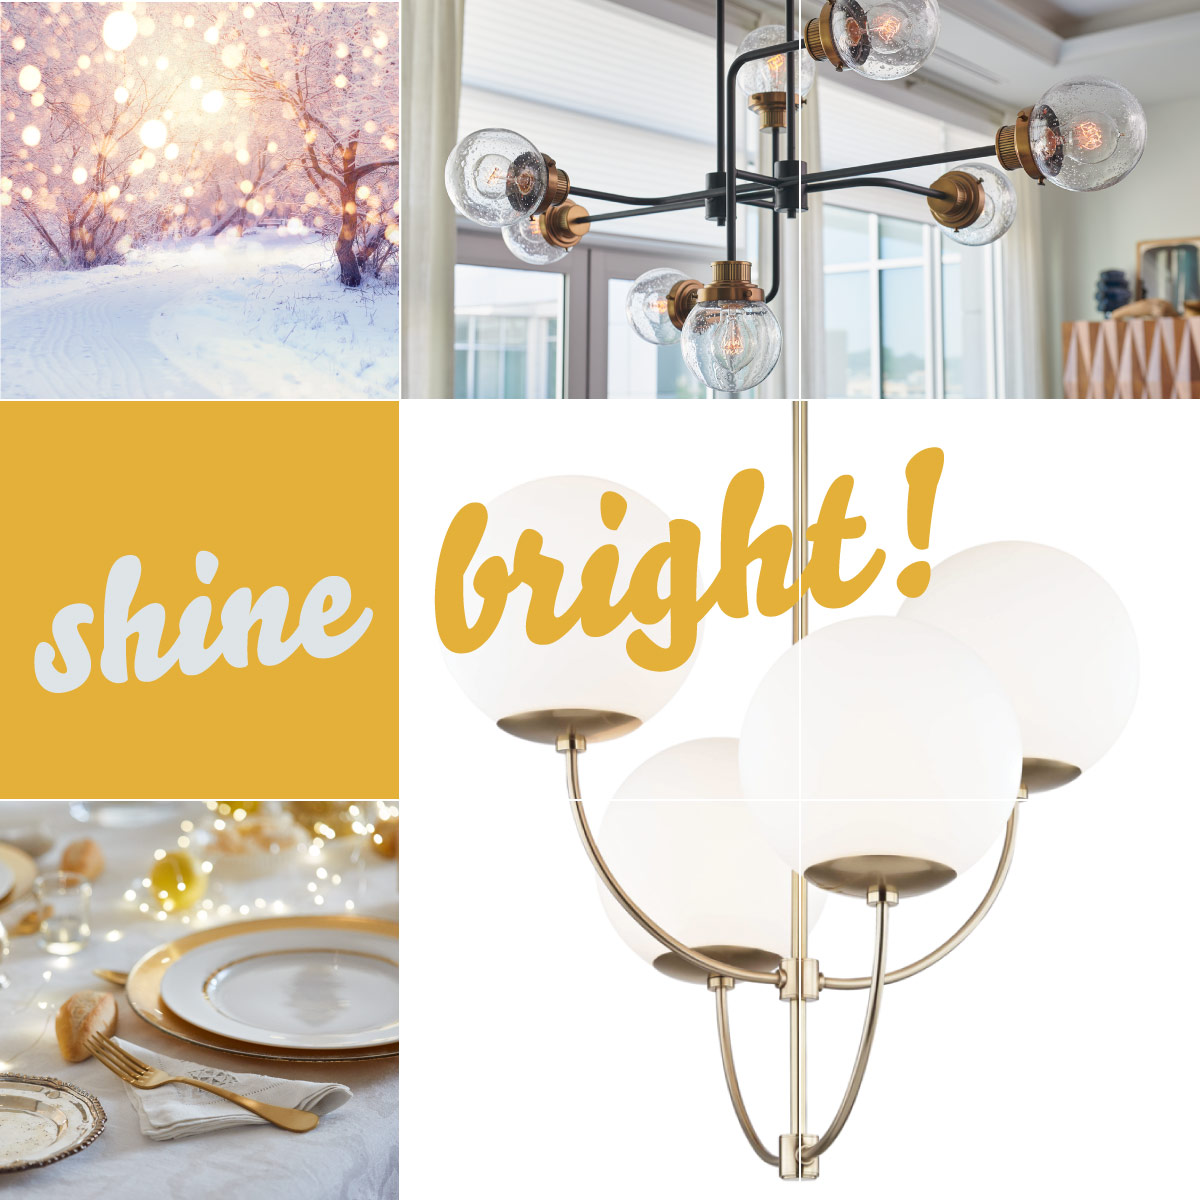 Lighting Trends for the Holidays